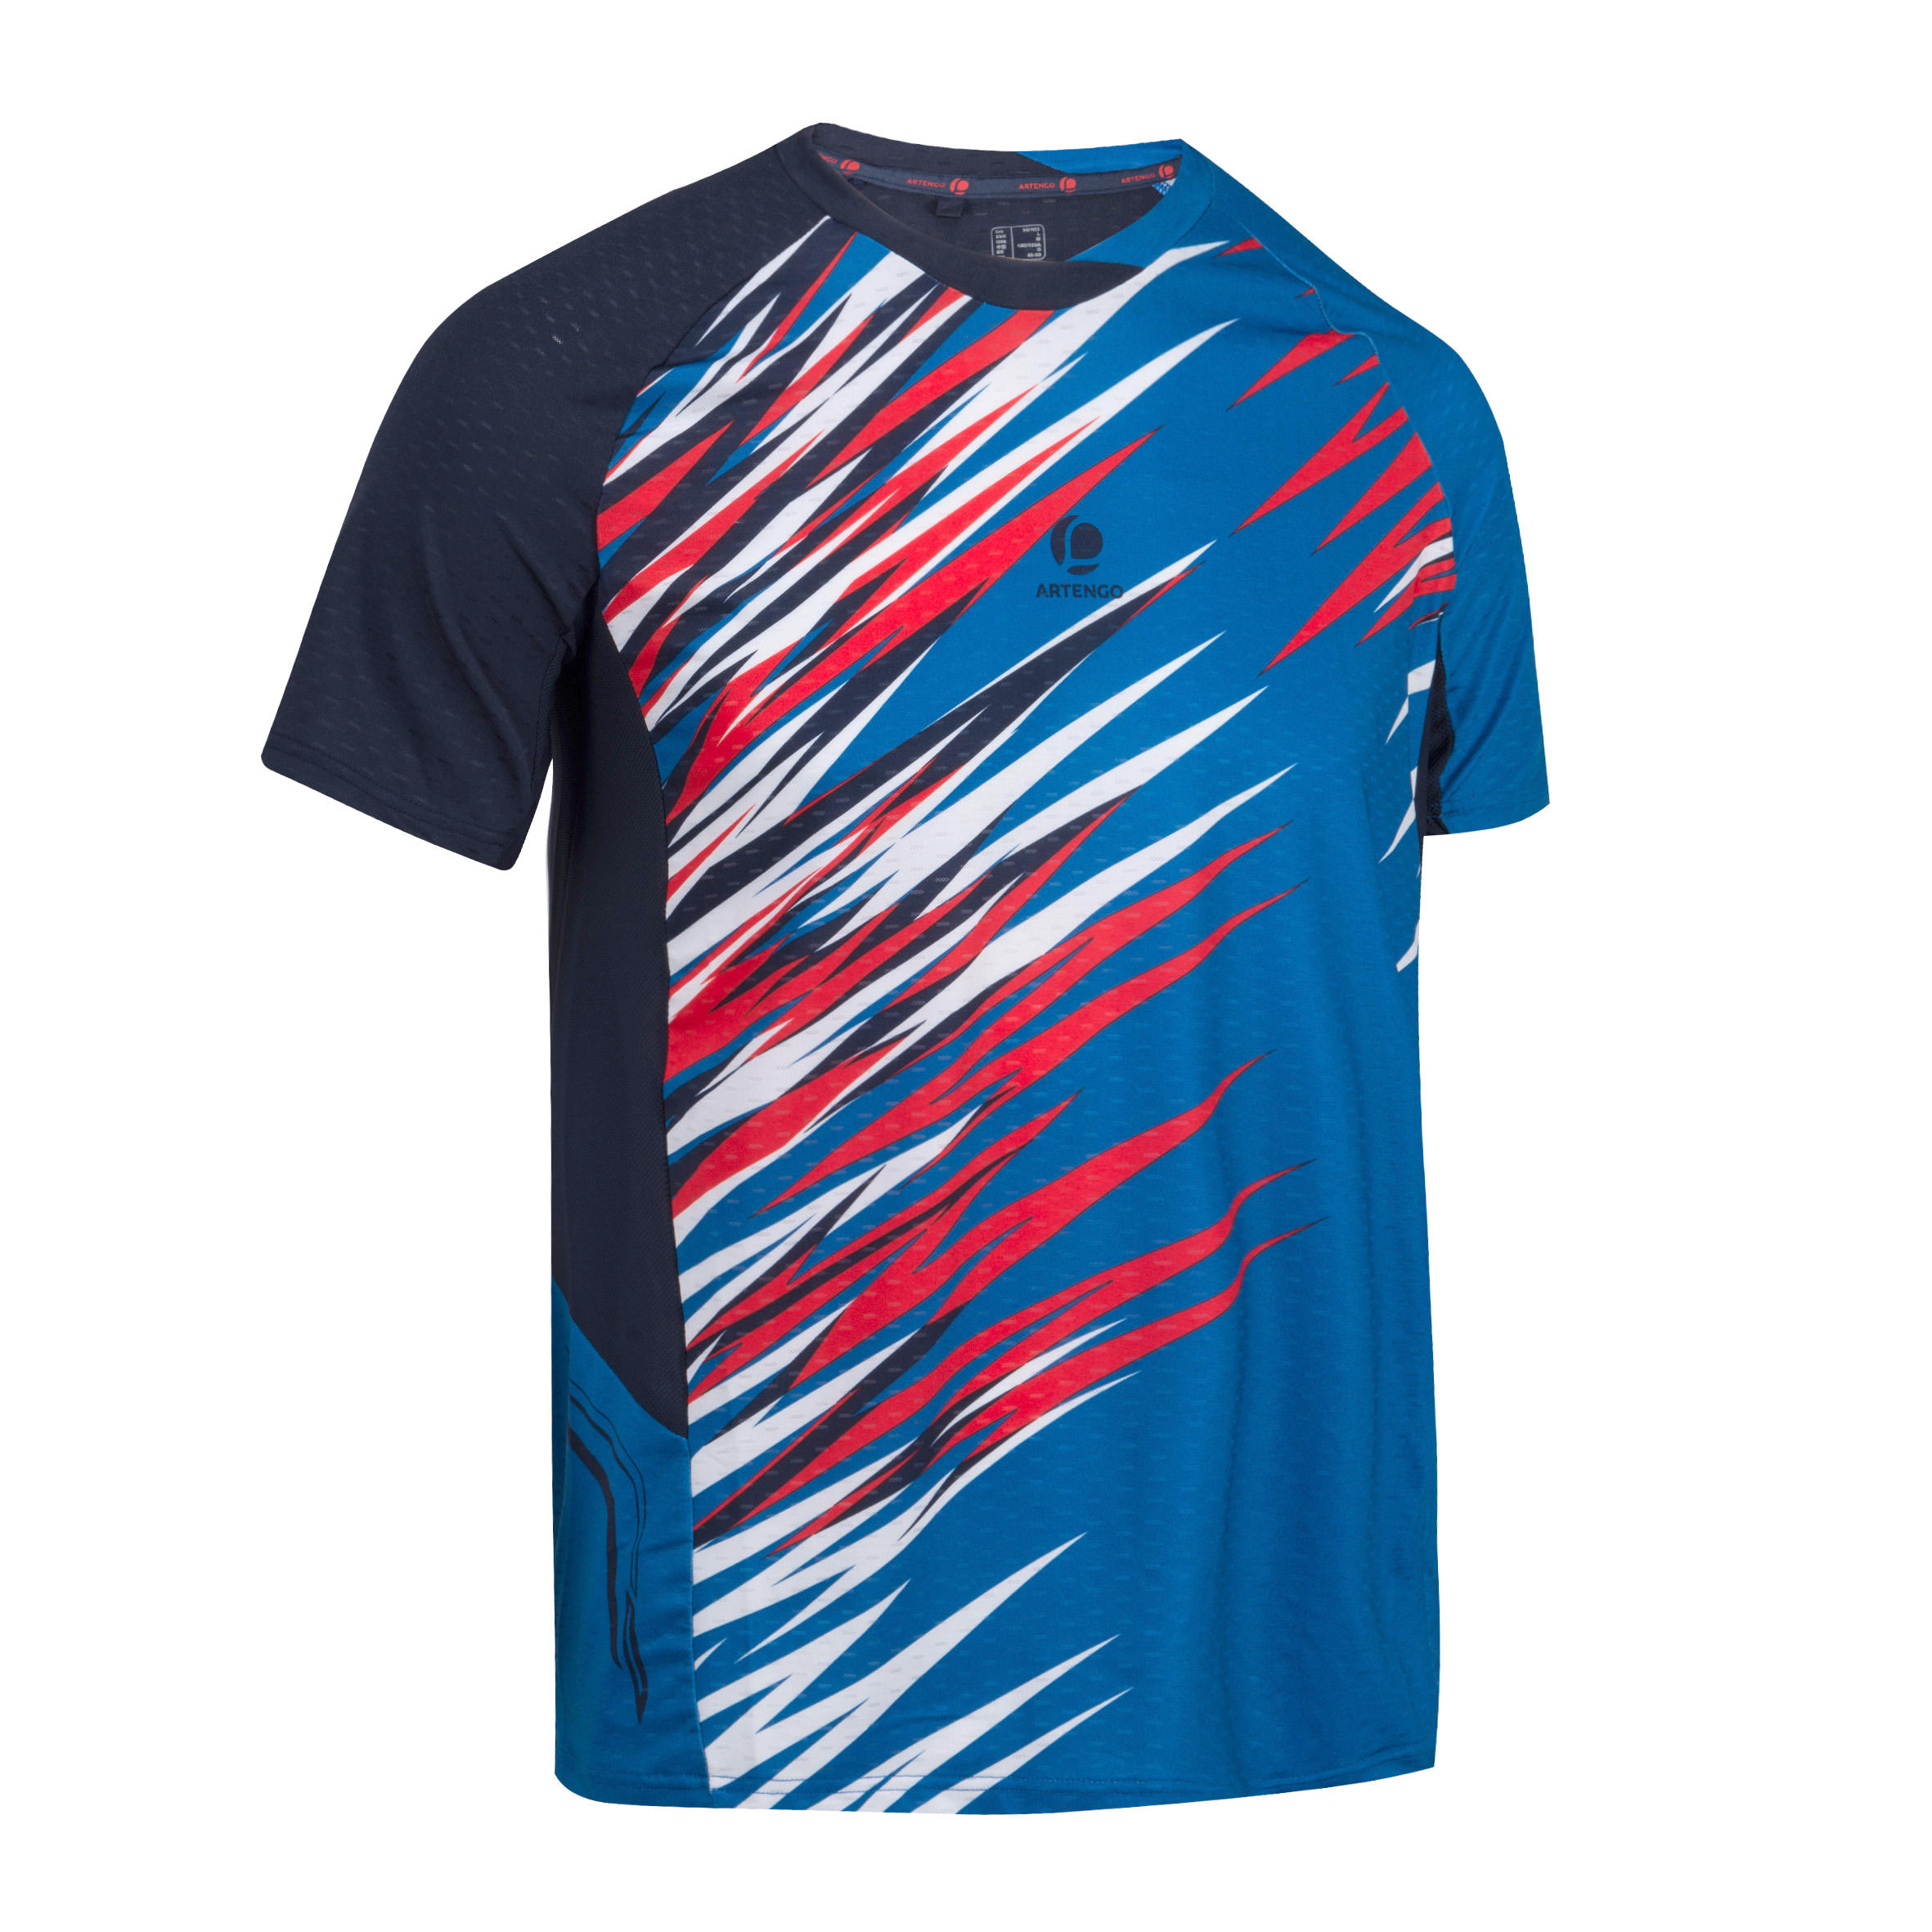 Dry 590 Badminton Tennis Table Tennis Padel Squash T-Shirt - Blue/Red